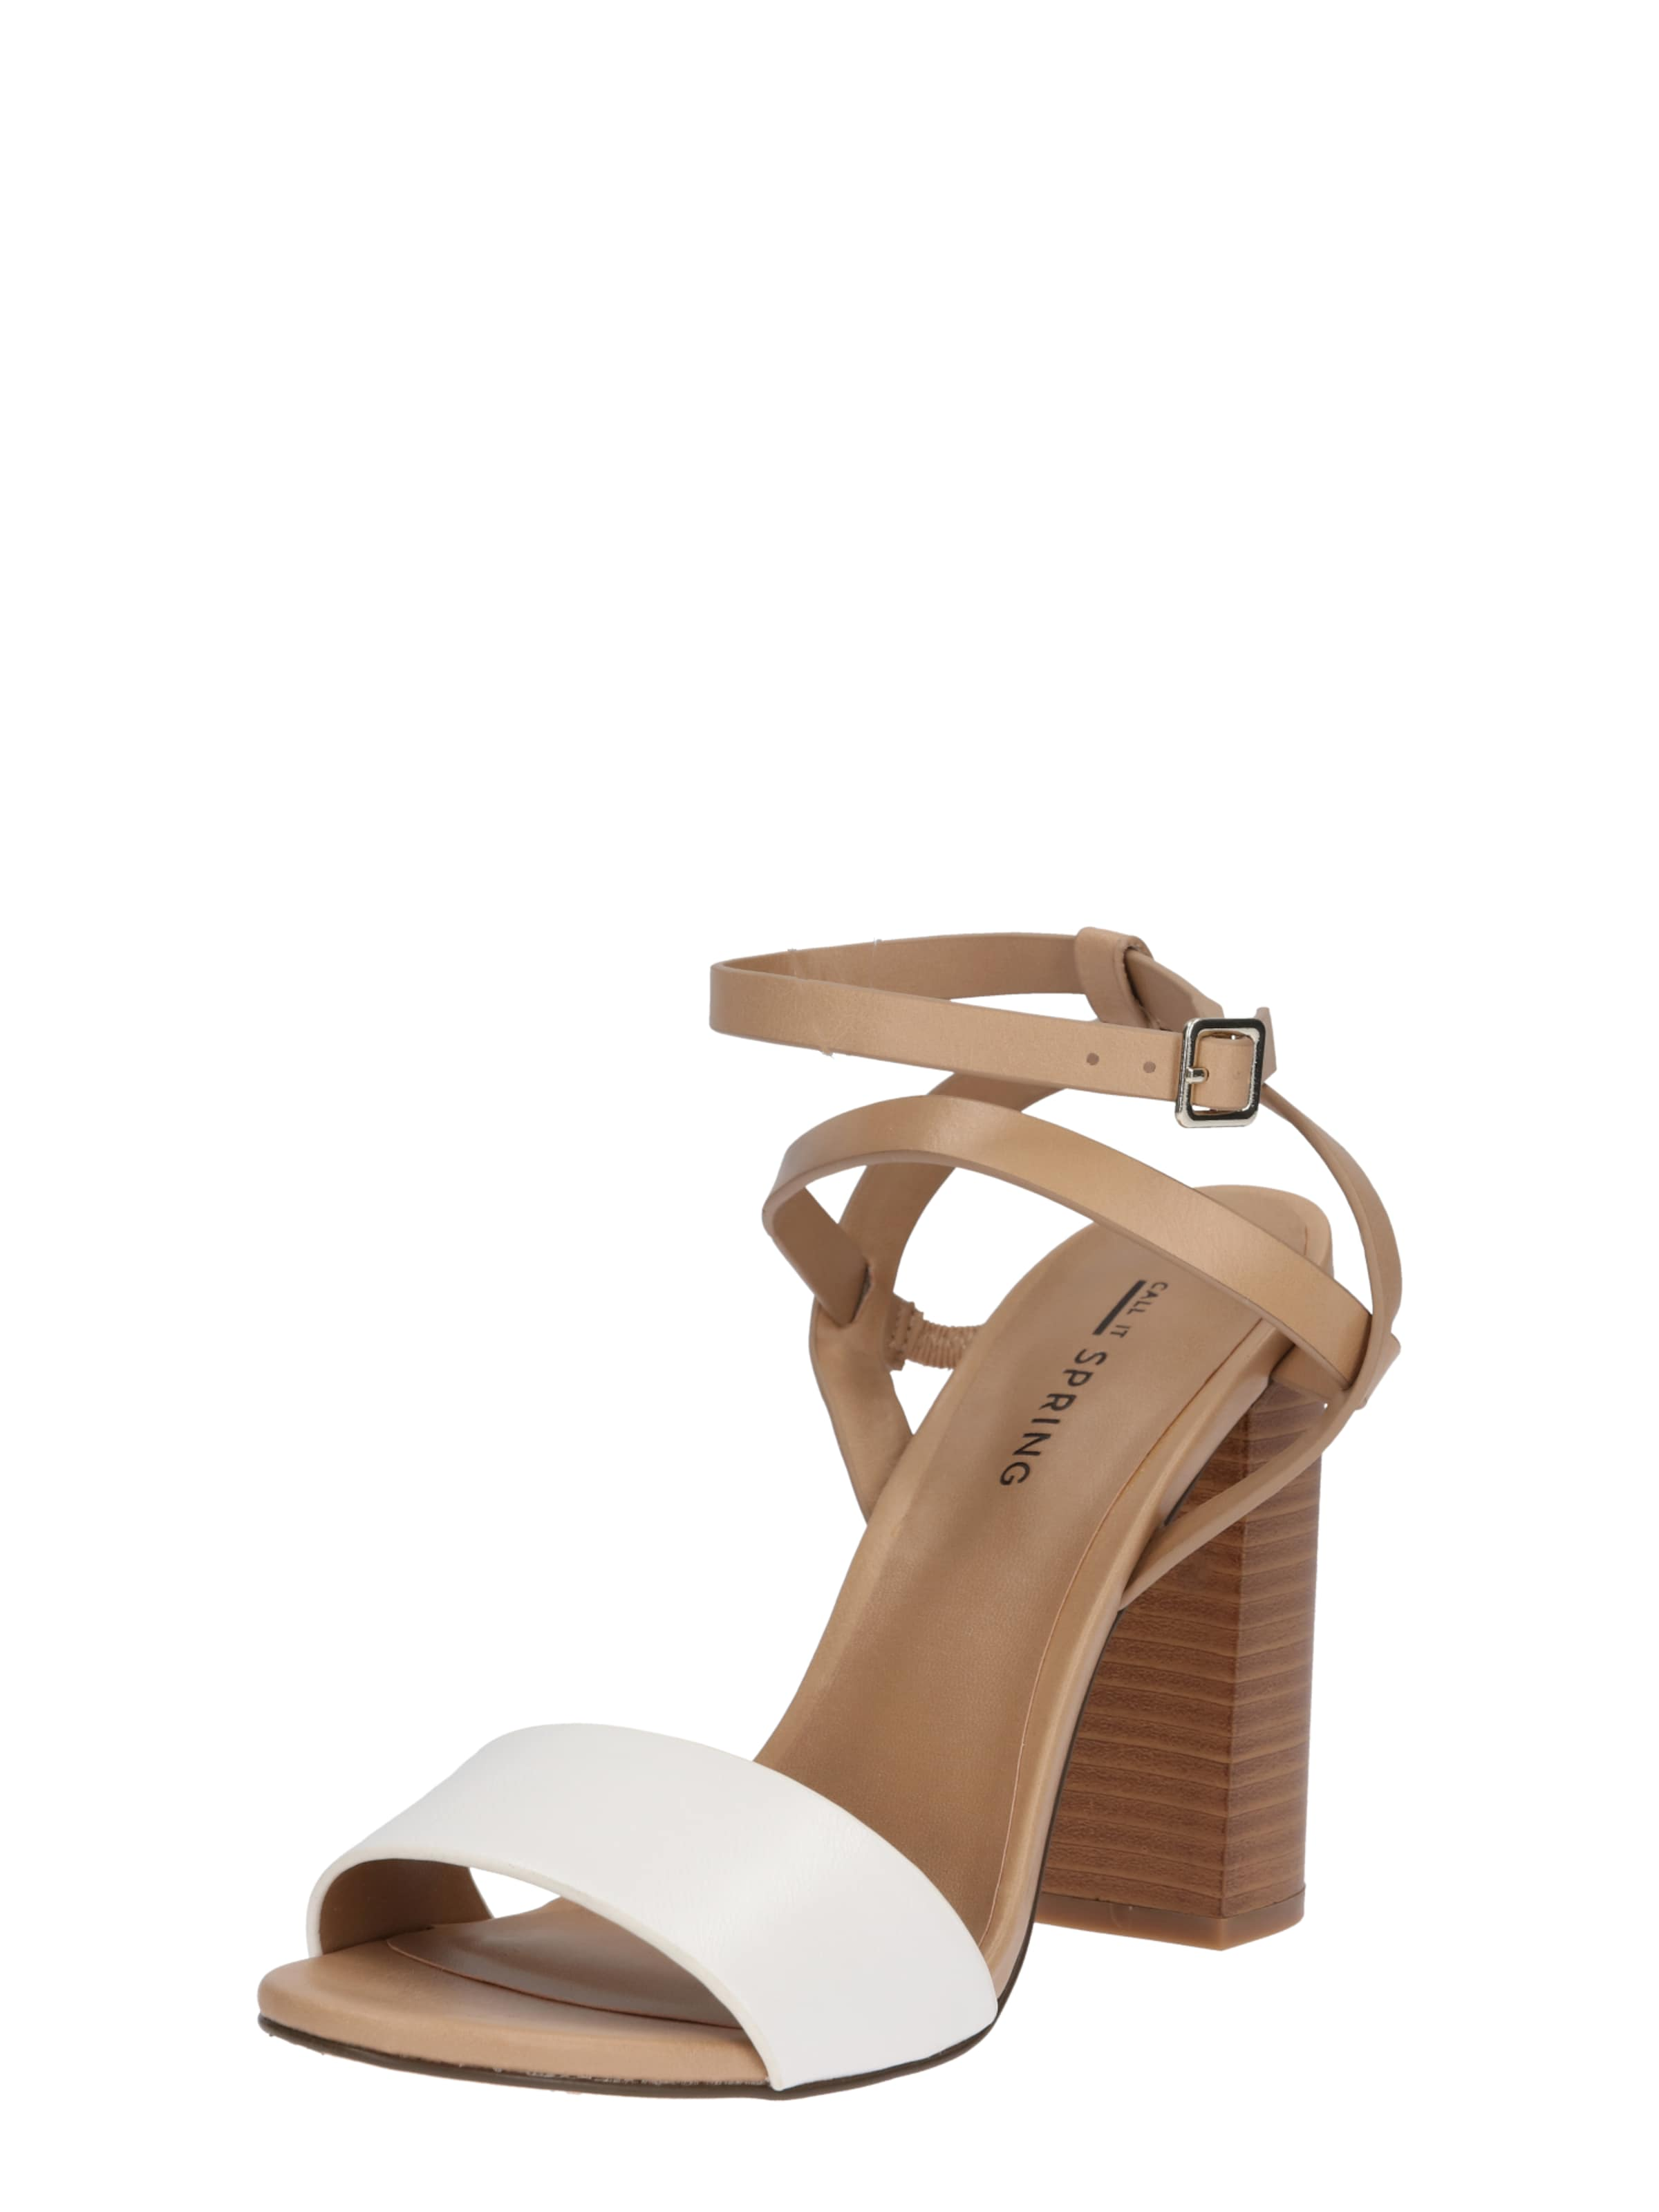 CALL Heel-Sandalette IT SPRING | High Heel-Sandalette CALL  PALEWIA 8dcac4